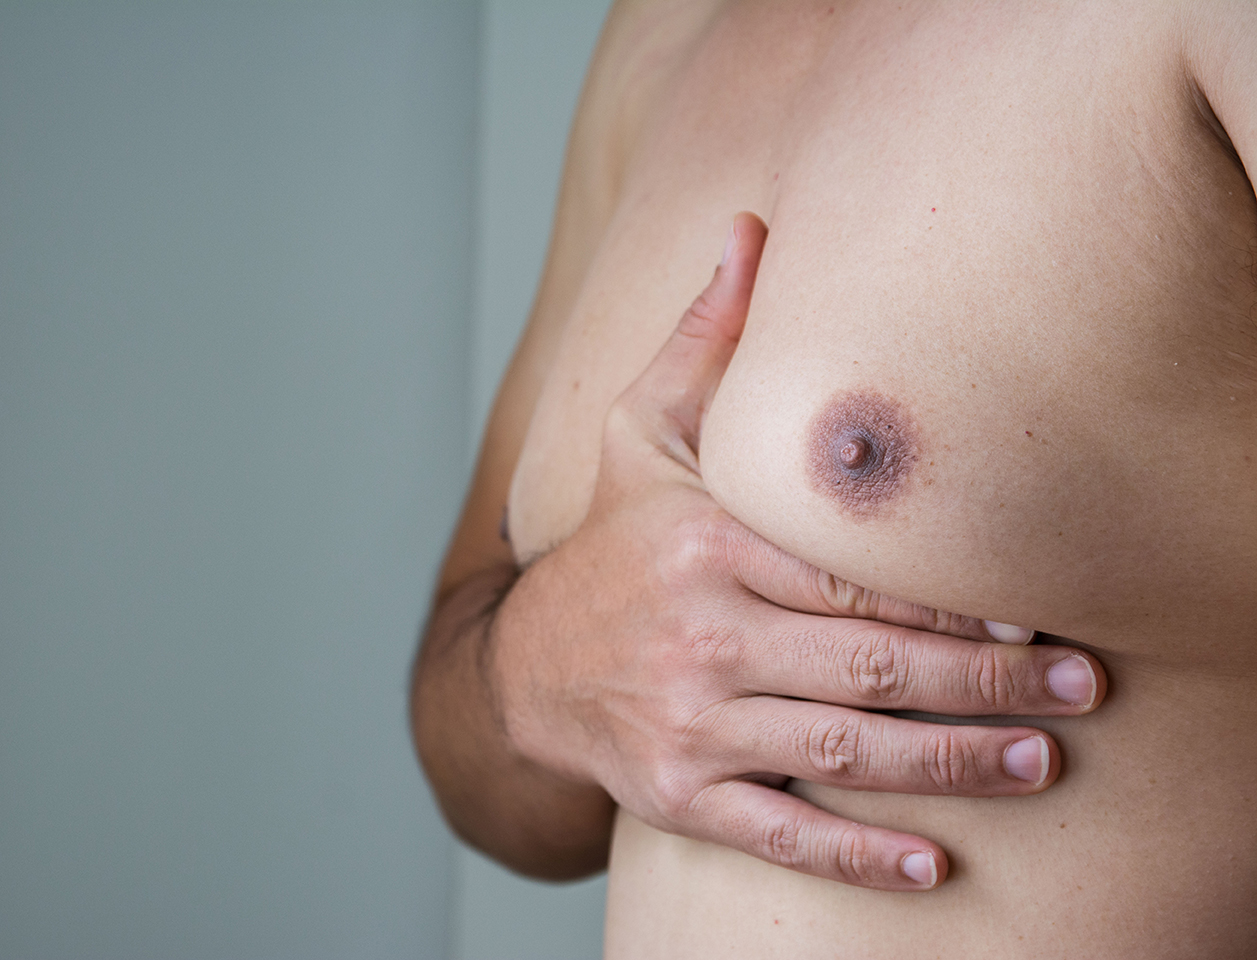 Surgical Breast Augmentation for Gynecomastia